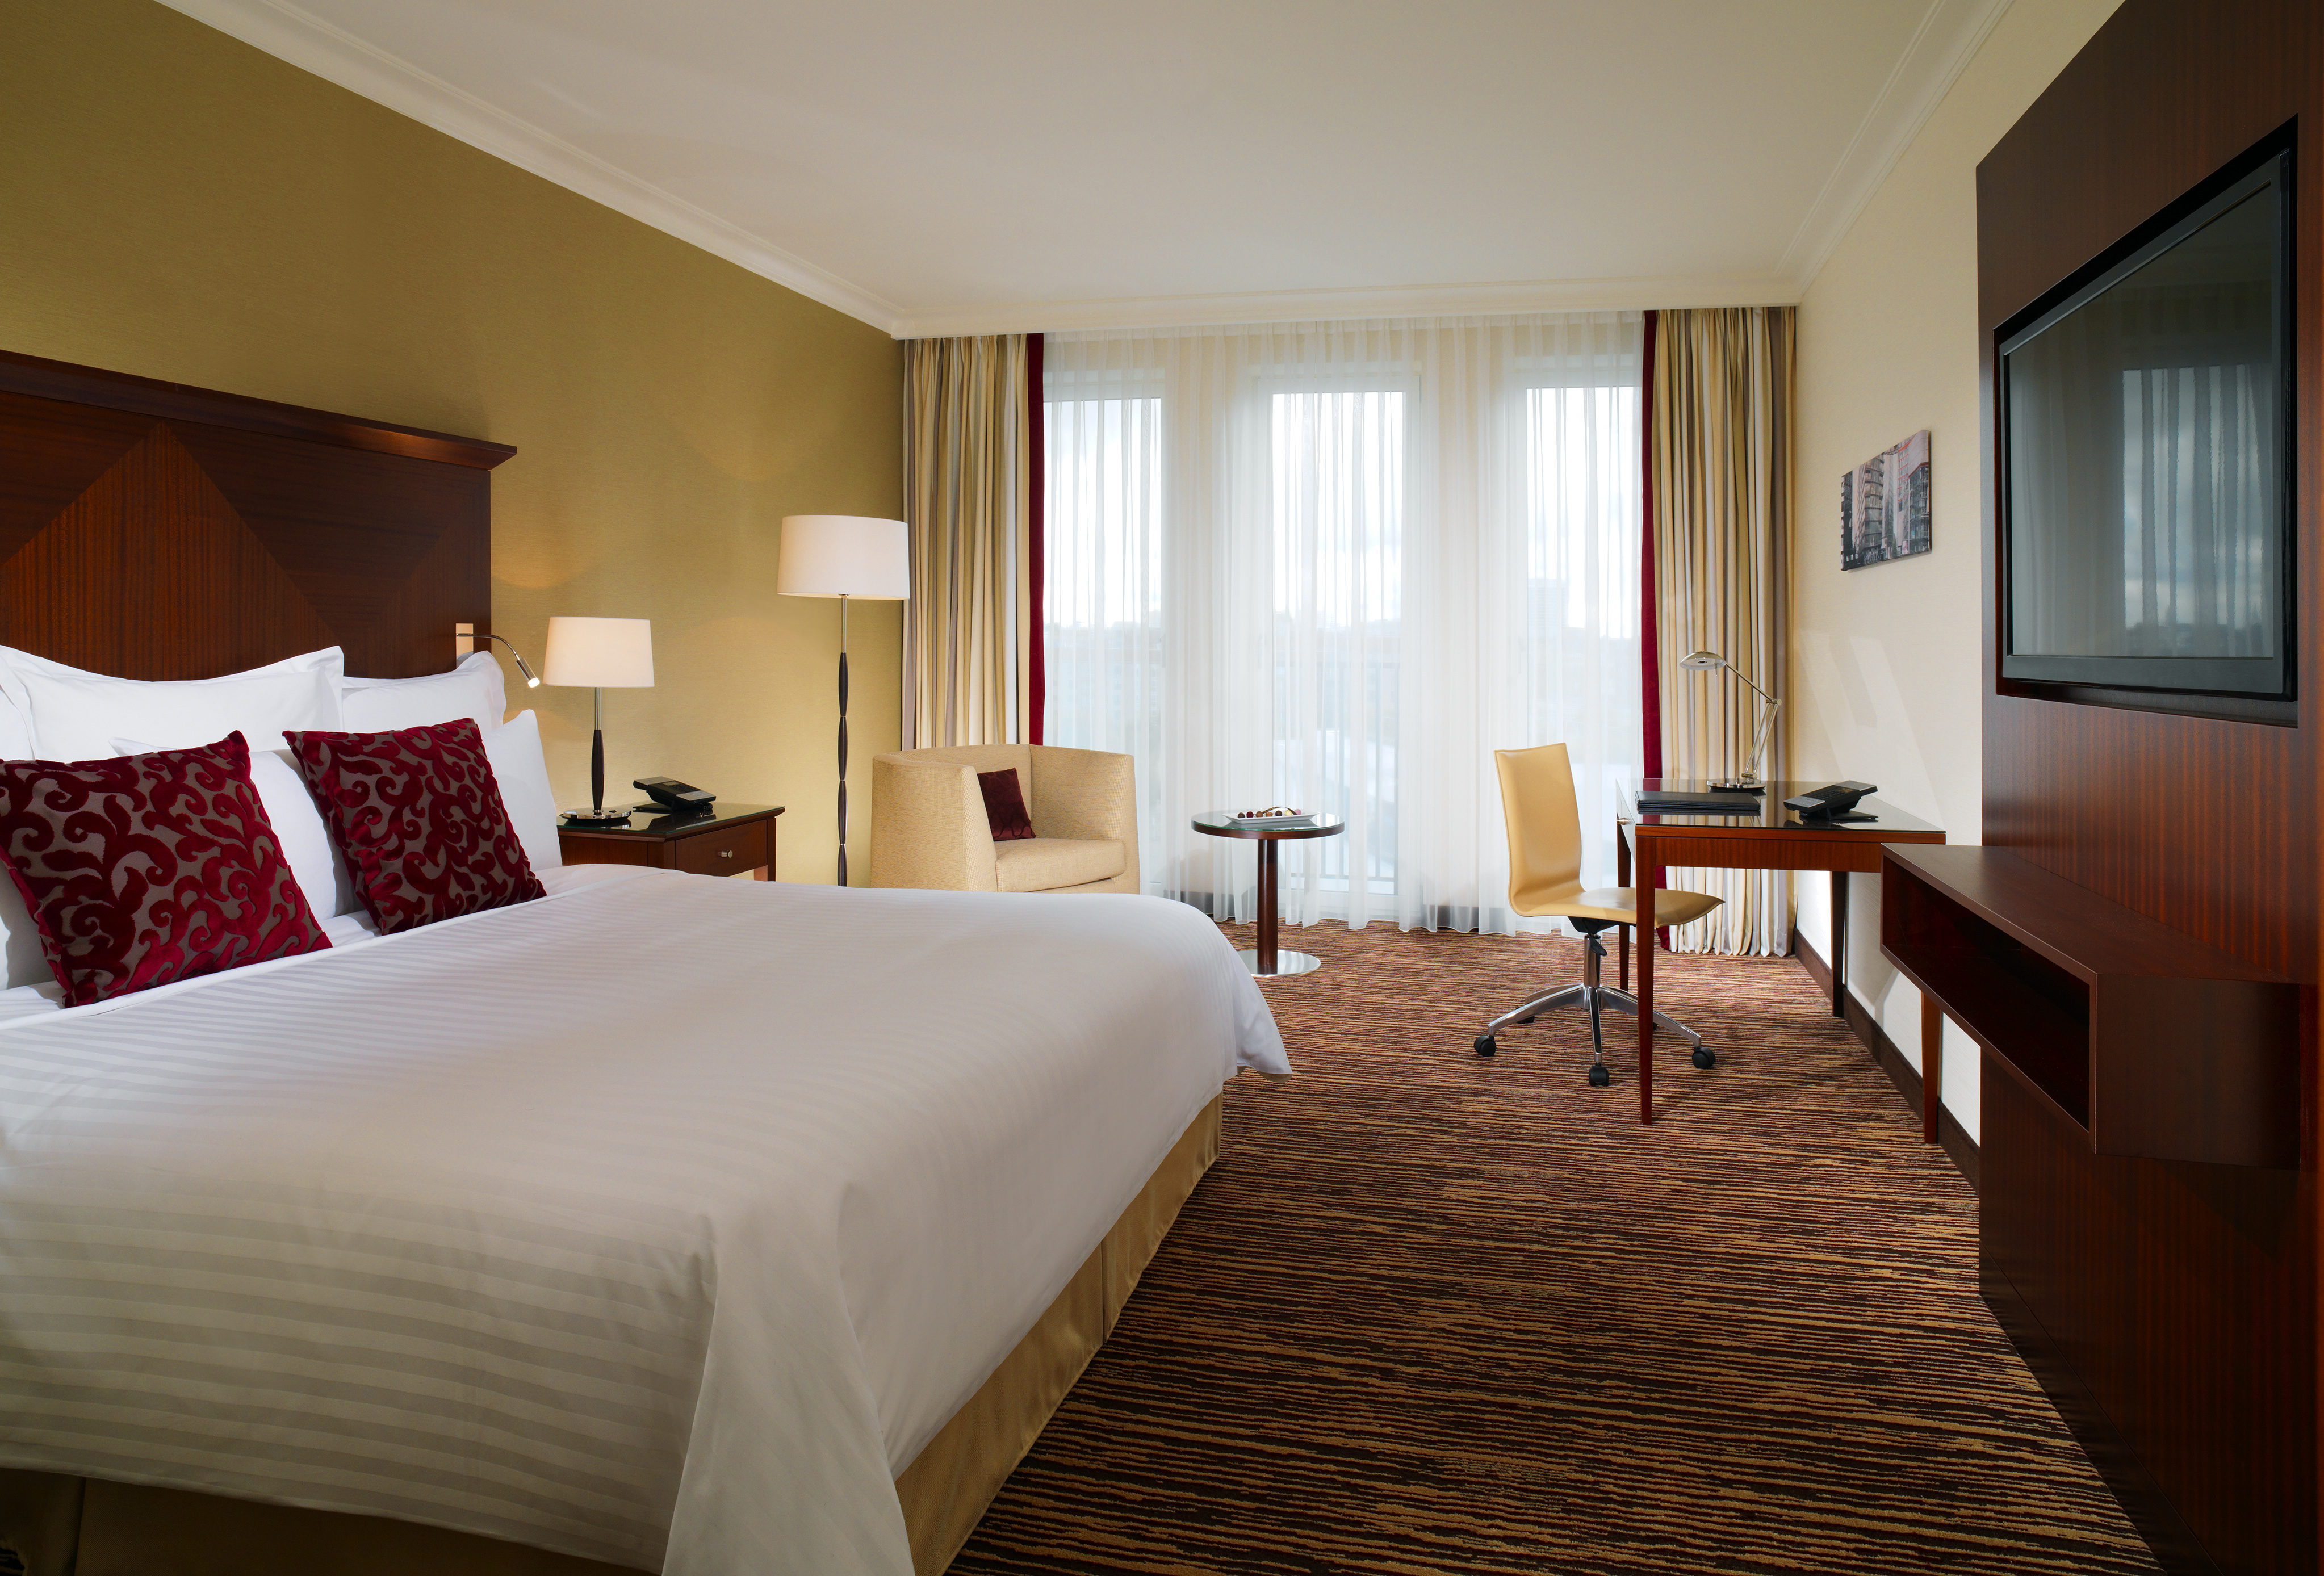 Neues hoteldesign berlin marriott hotel pr sentiert 225 for Design hotelzimmer